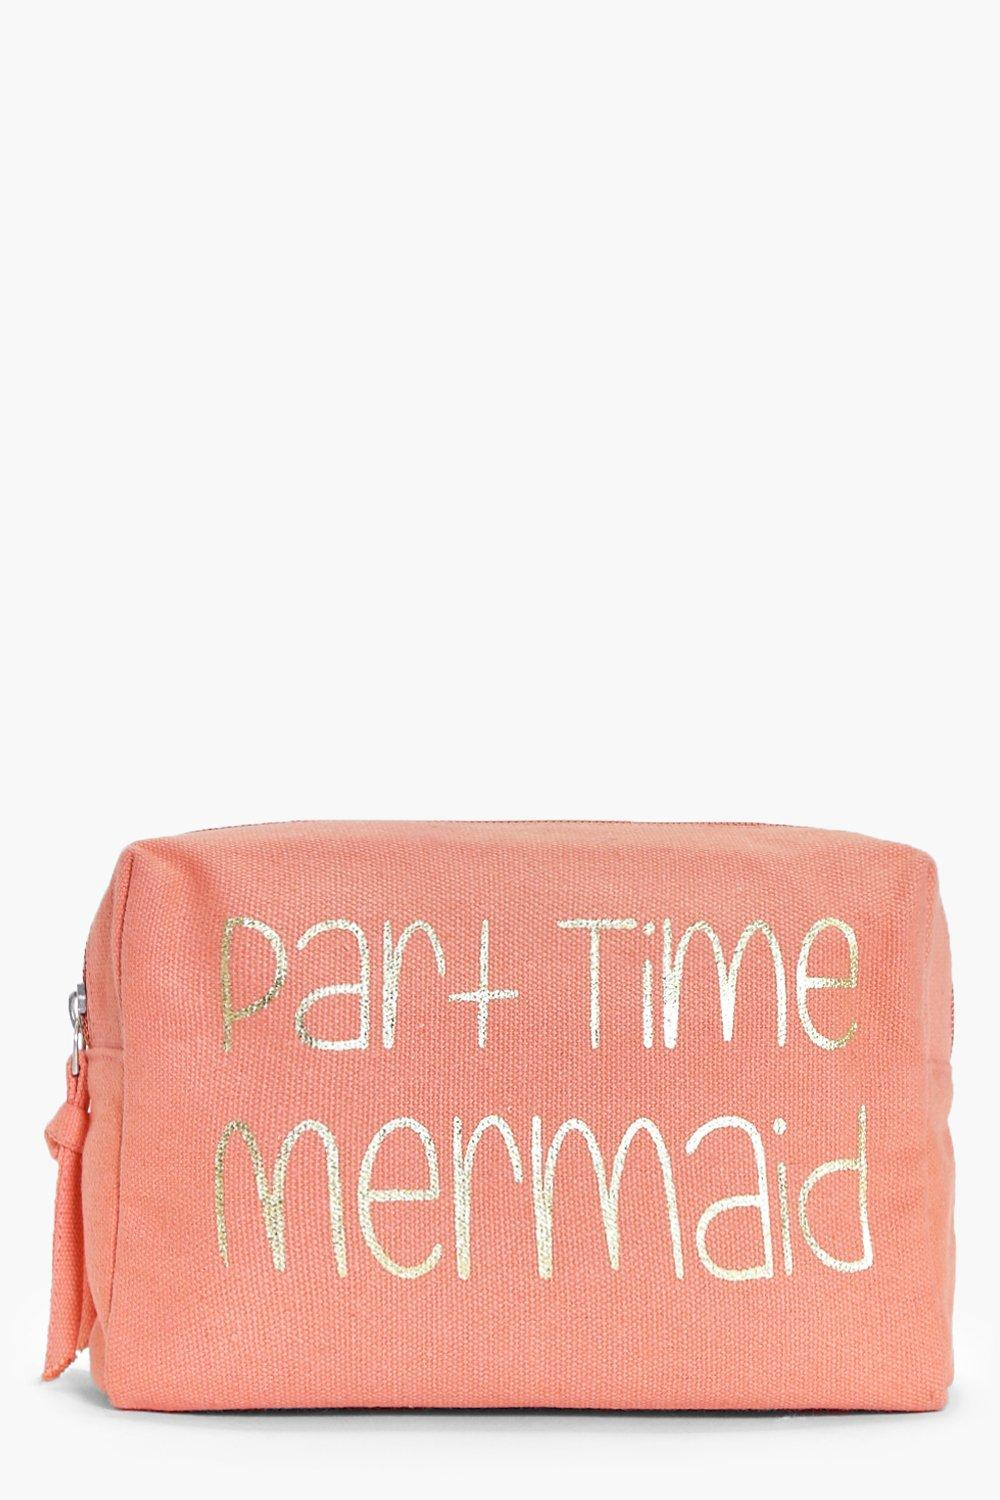 boohoo Time Mermaid Structured Make Up Bag - pink